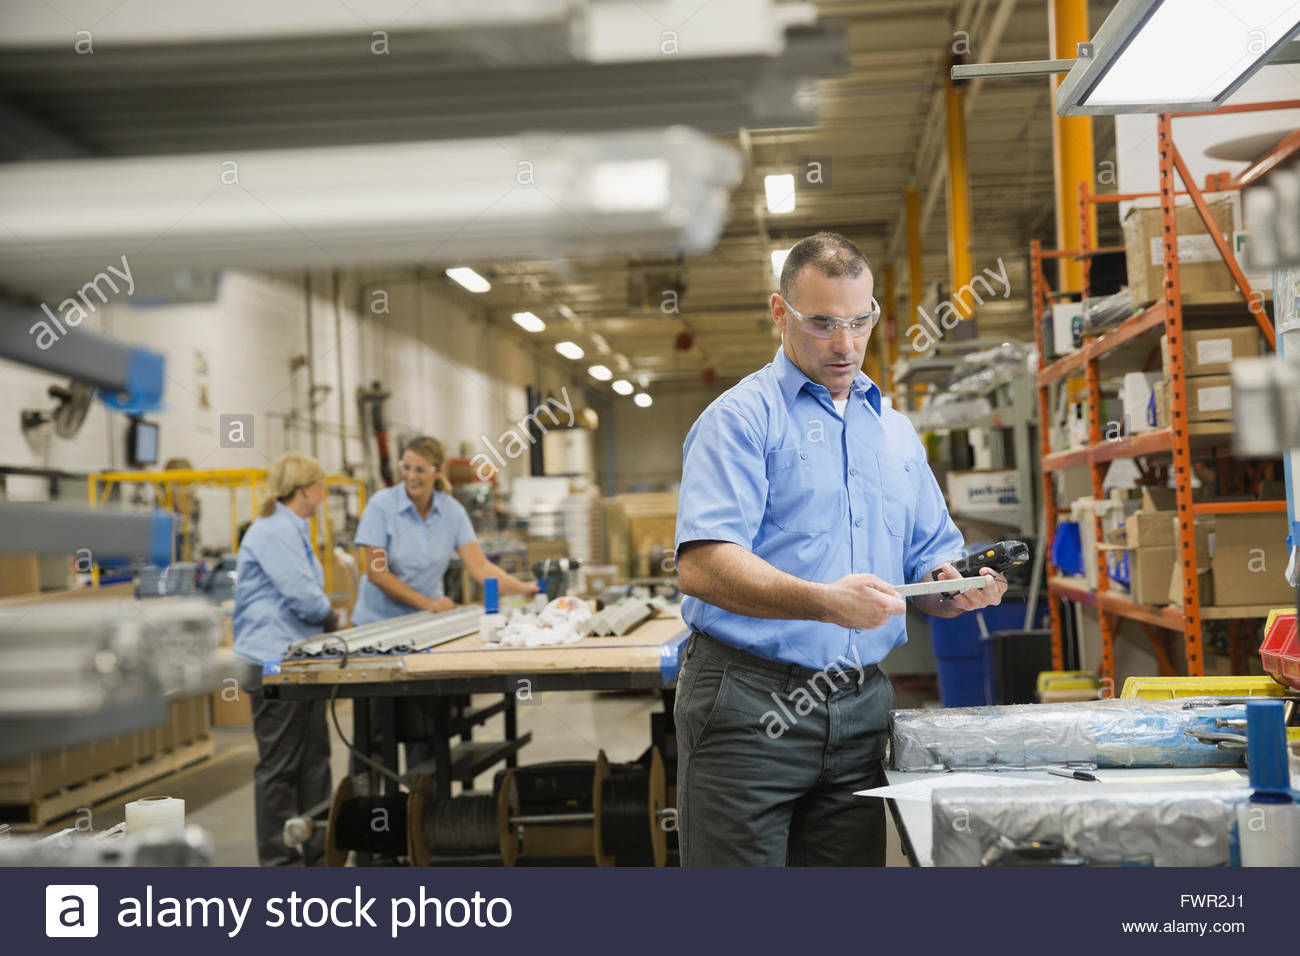 Manual worker examining metal parts in factory - Stock Image